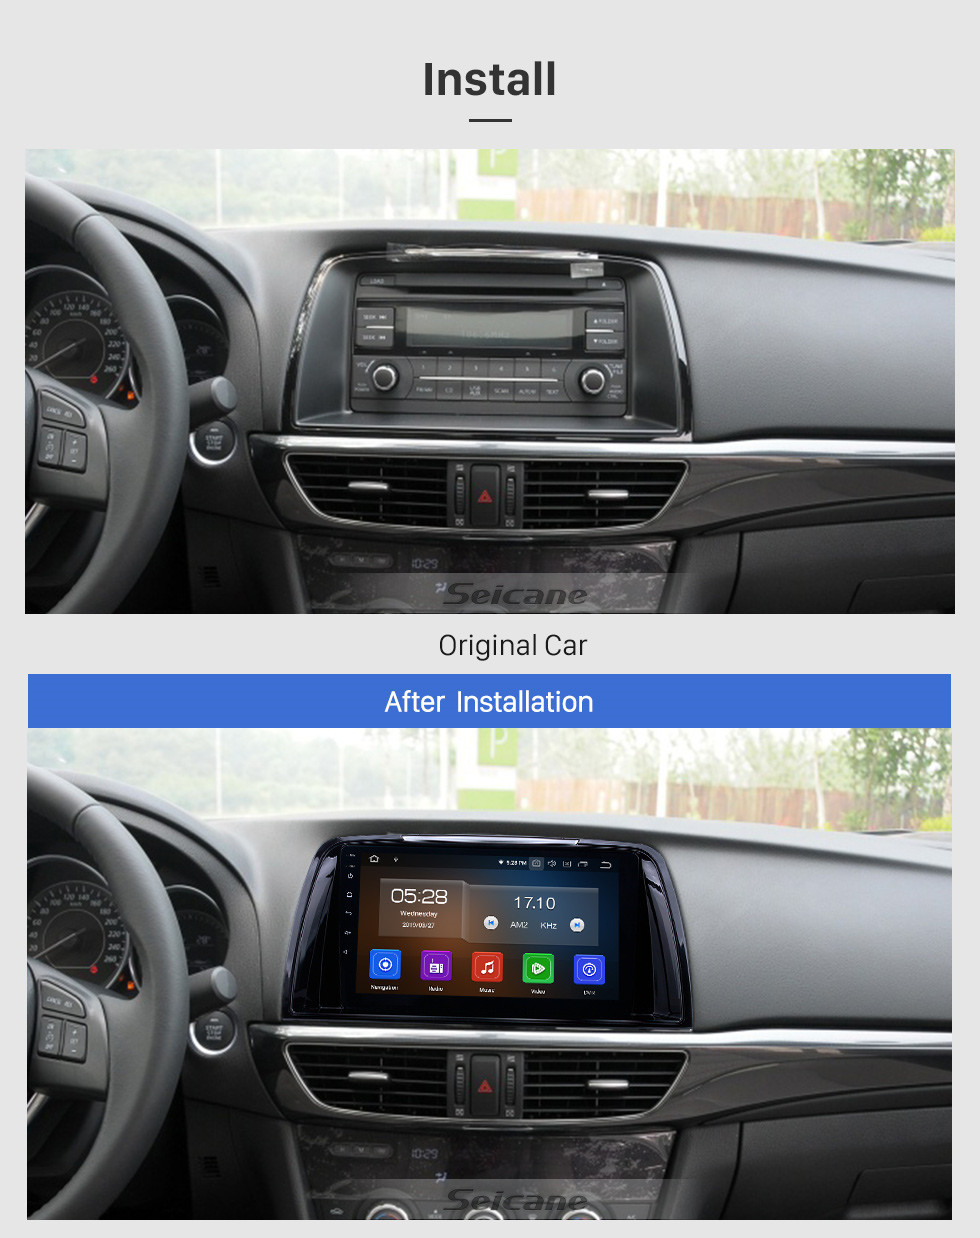 Seicane 9 inch Android 10.0 GPS Navigation Radio for 2014-2016 Mazda Atenza with HD Touchscreen Carplay AUX Bluetooth support 1080P